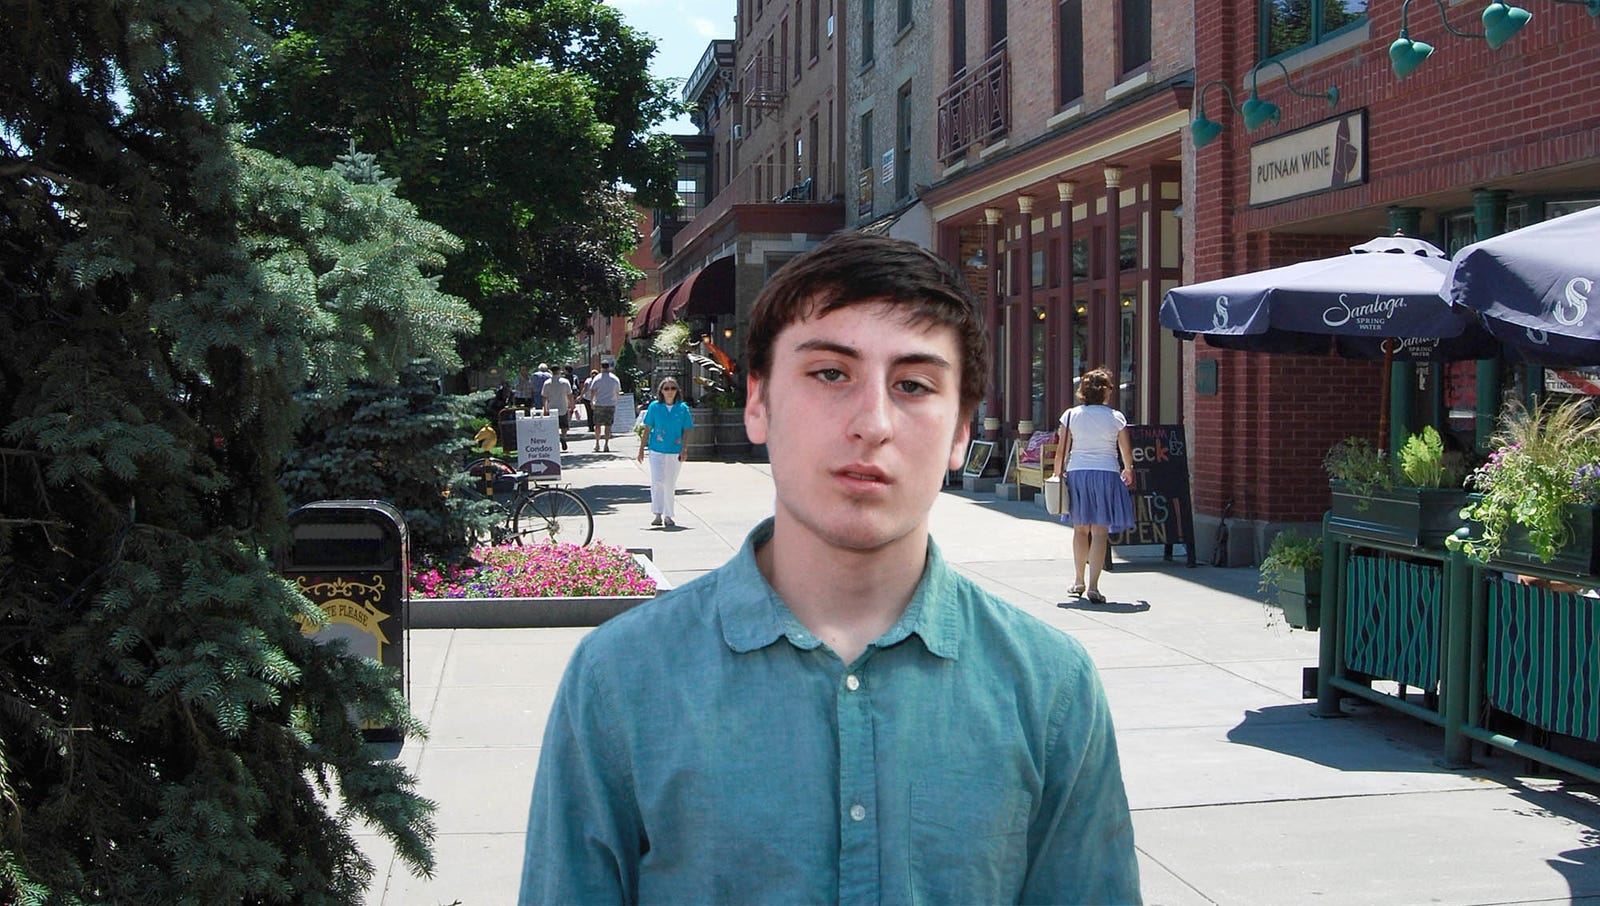 Liberal Arts Graduate Realizes He's Already Forgotten 90% Of Human Condition